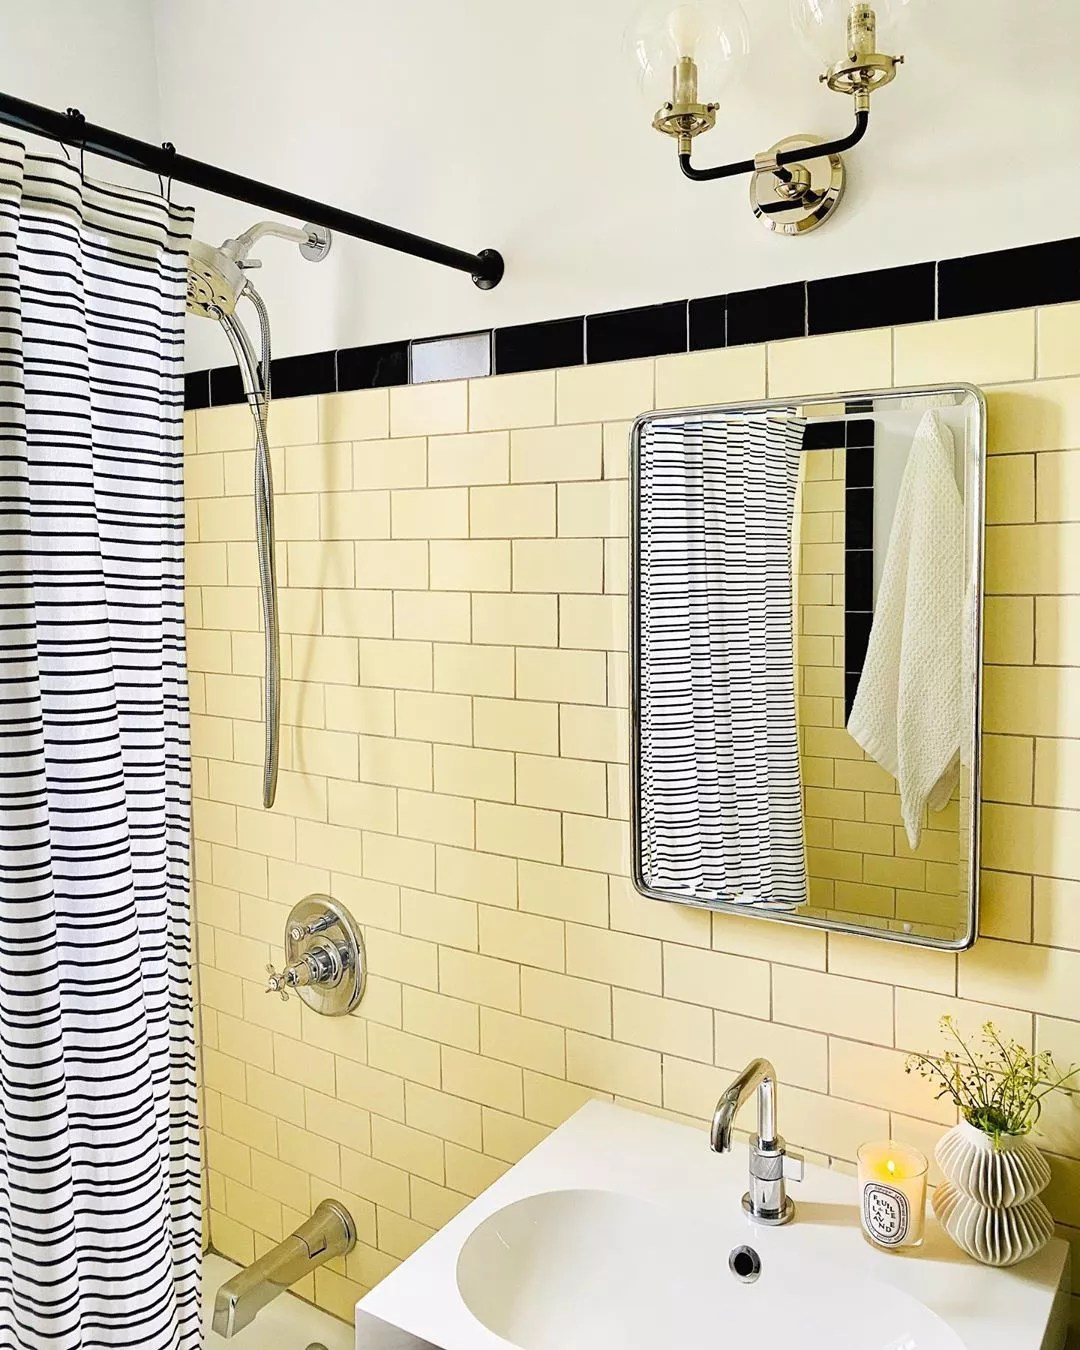 updated bathroom walls with yellow subway tiles and new light fixture photo by Instagram user @ipatrickdesign